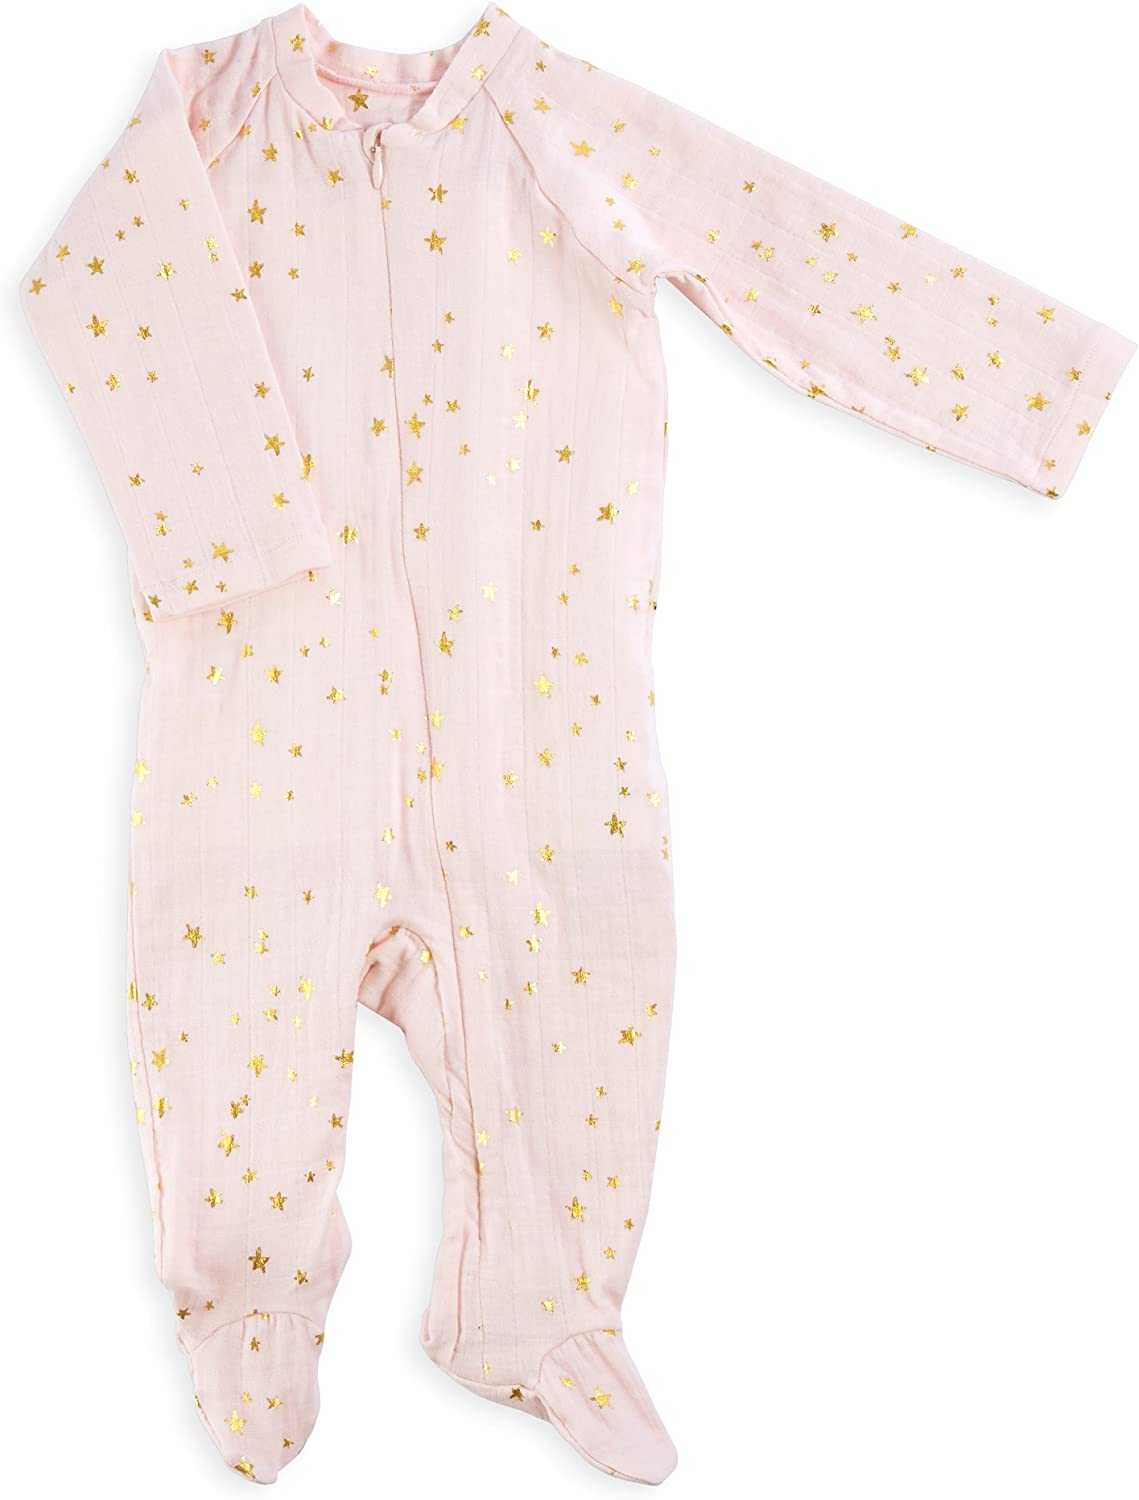 aden anais Baby Girls Long Sleeve Zipper One-Piece Primrose-0-3